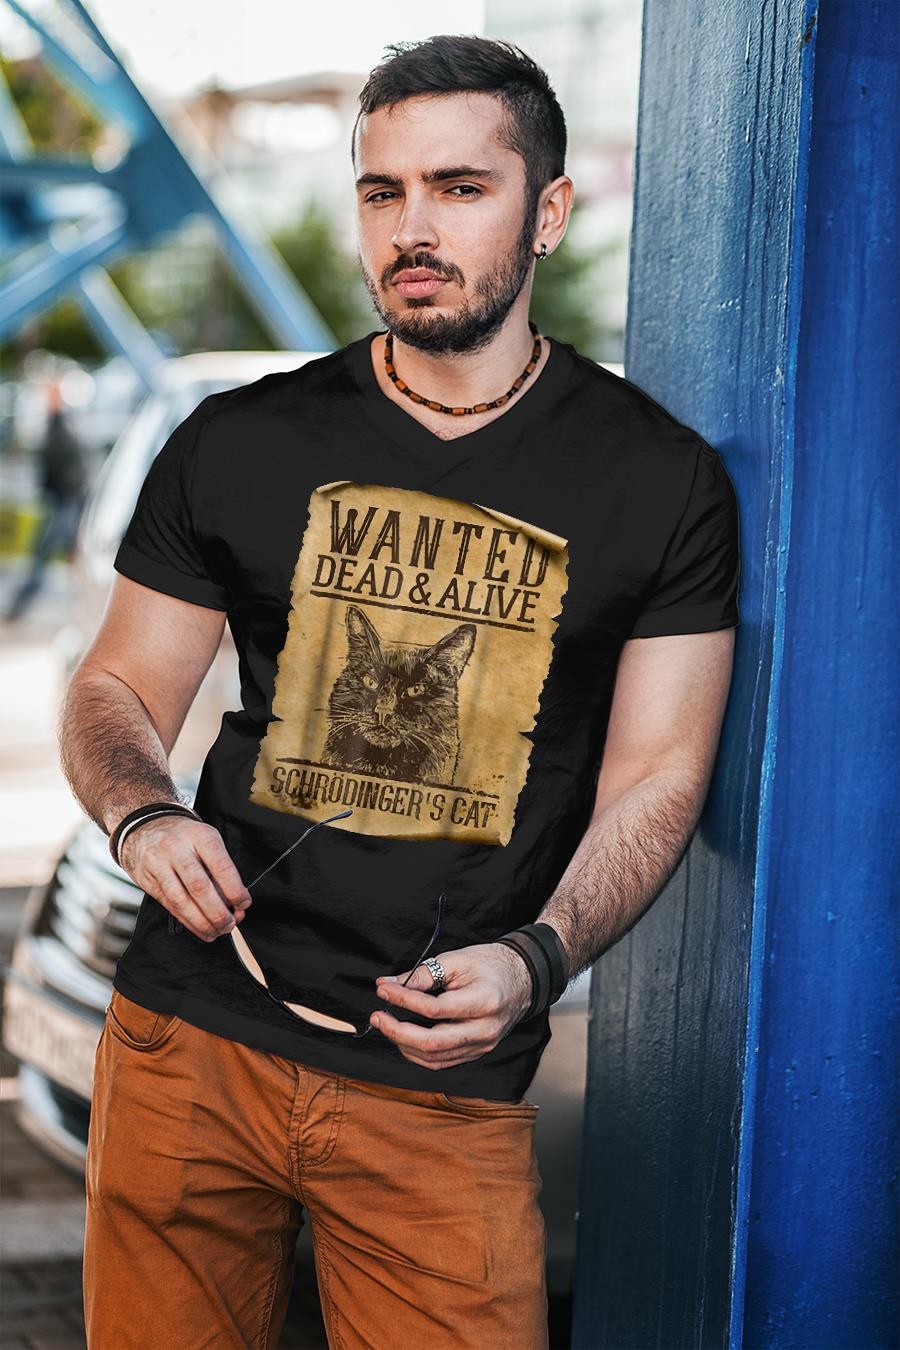 Wanted dead and alive Schrodinger's Cats shirt unisex